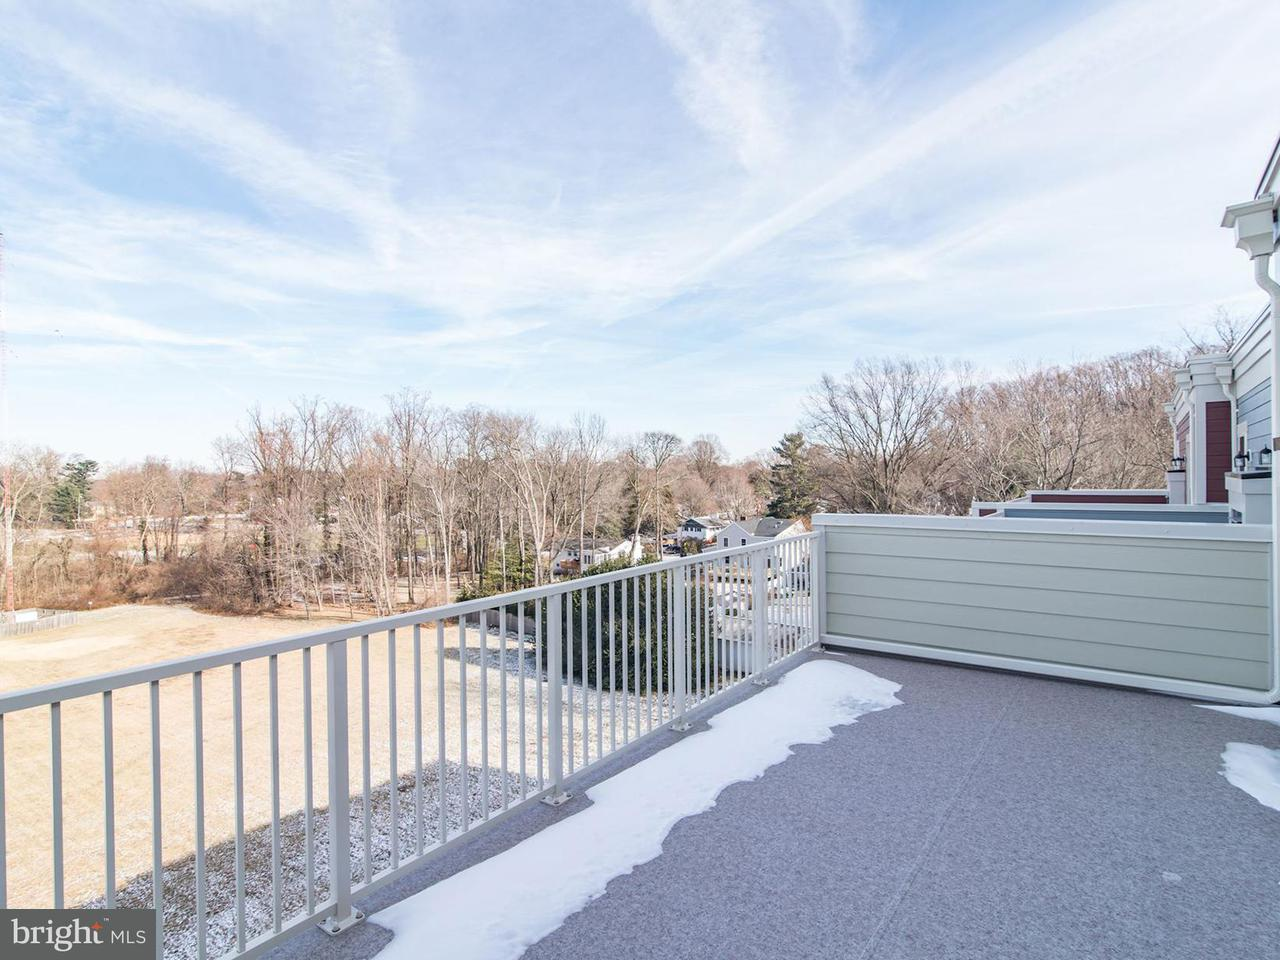 Additional photo for property listing at 10714 Viognier Ter #0 10714 Viognier Ter #0 Fairfax, 버지니아 22030 미국